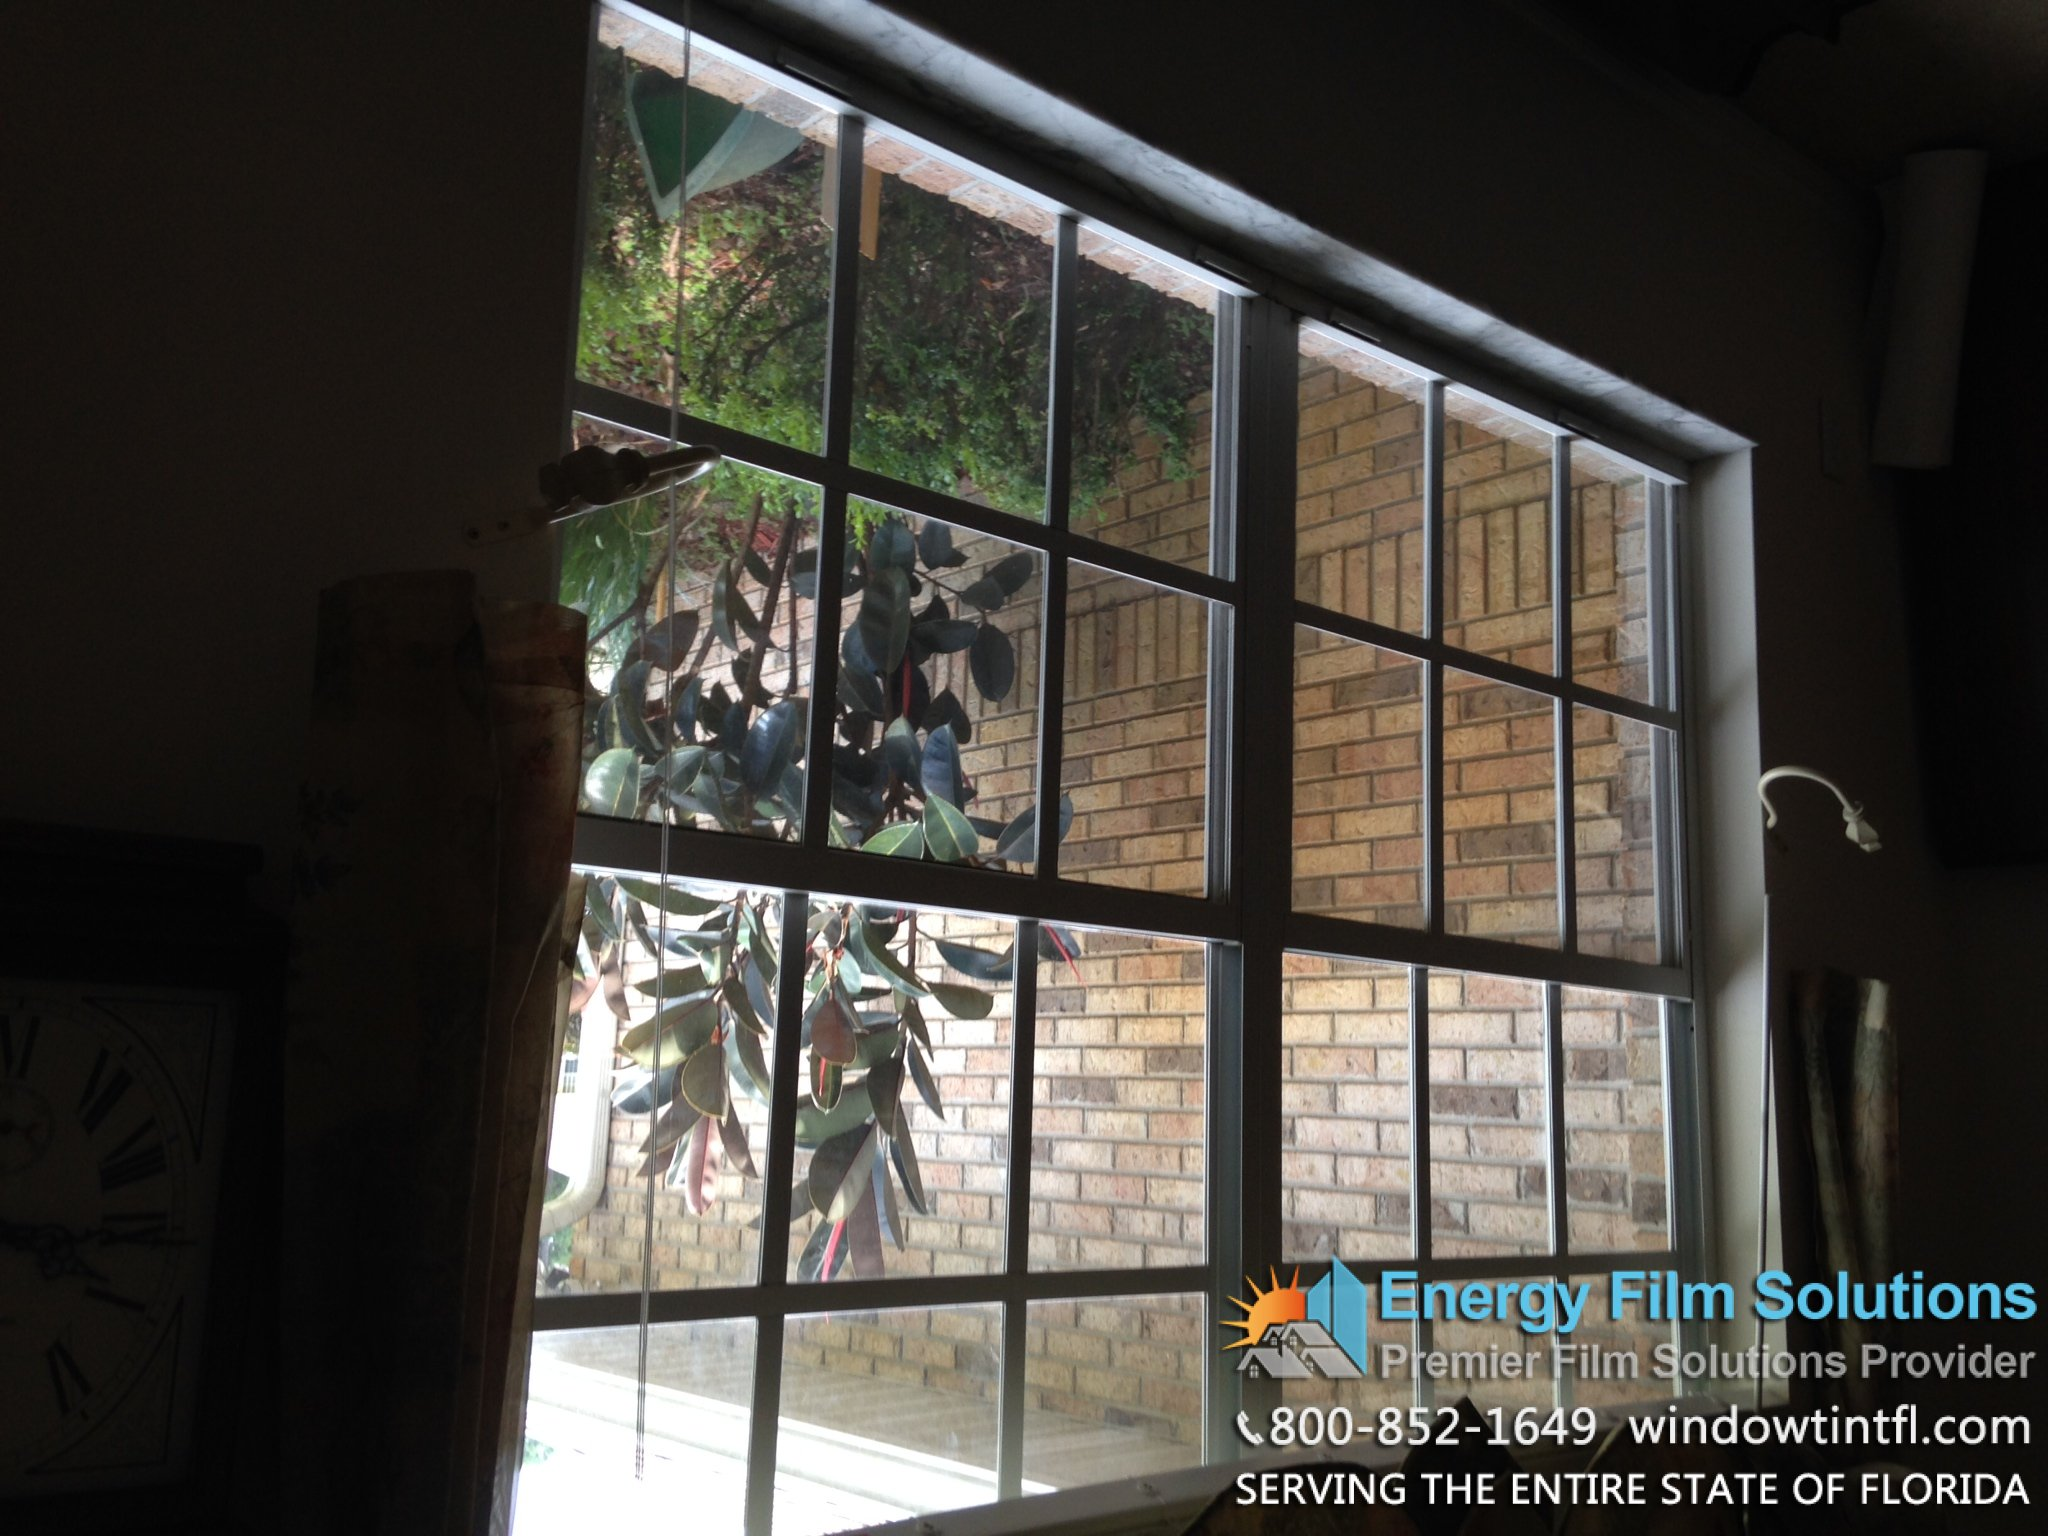 Residential safety security window filn home window tint for Window alarms